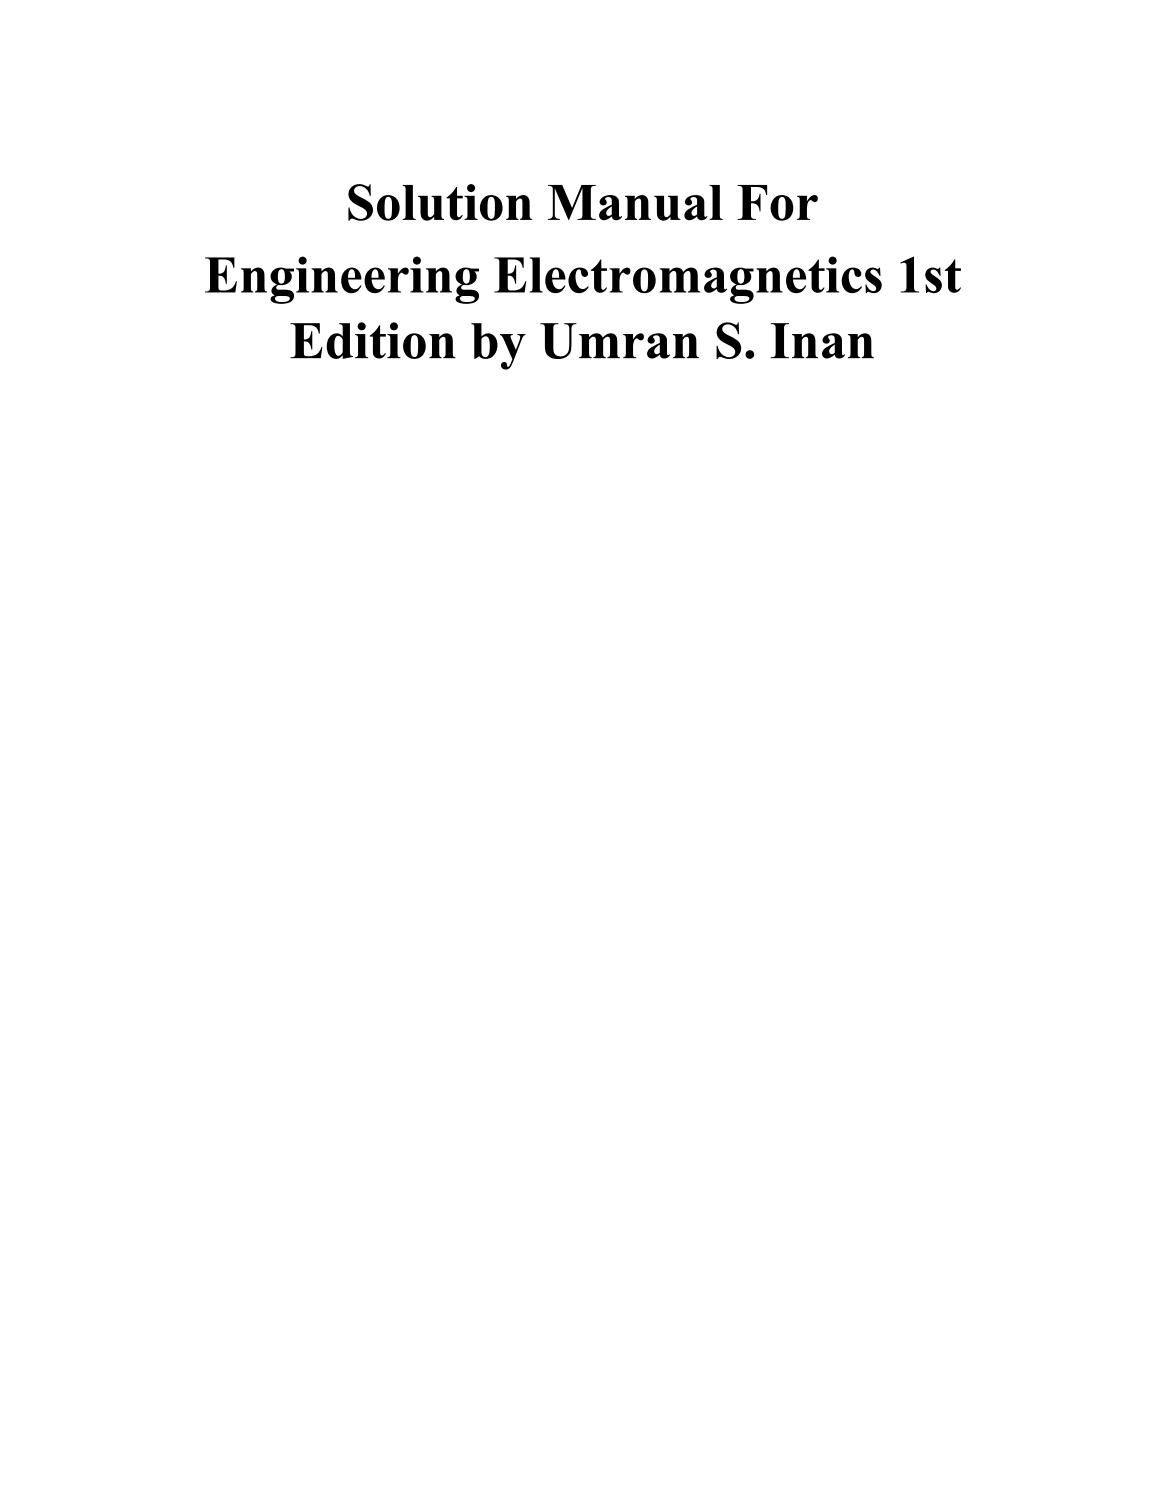 Solution Manual for Engineering Electromagnetics 1st Edition by Umran S.  Inan